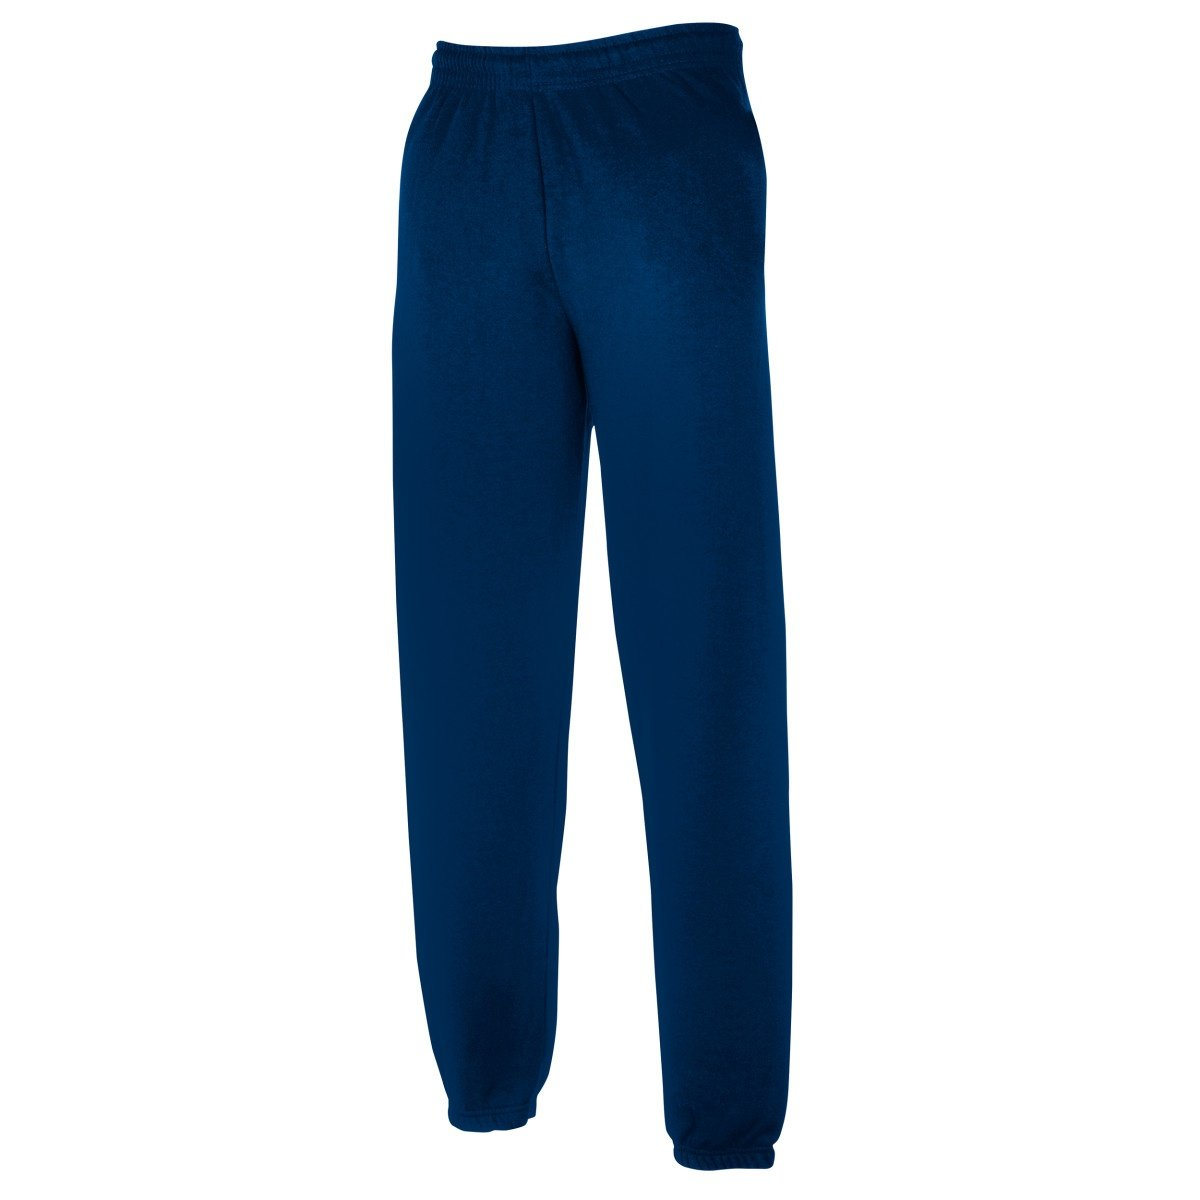 Fruit of the Loom Men's Jogger Sports Trousers 64026